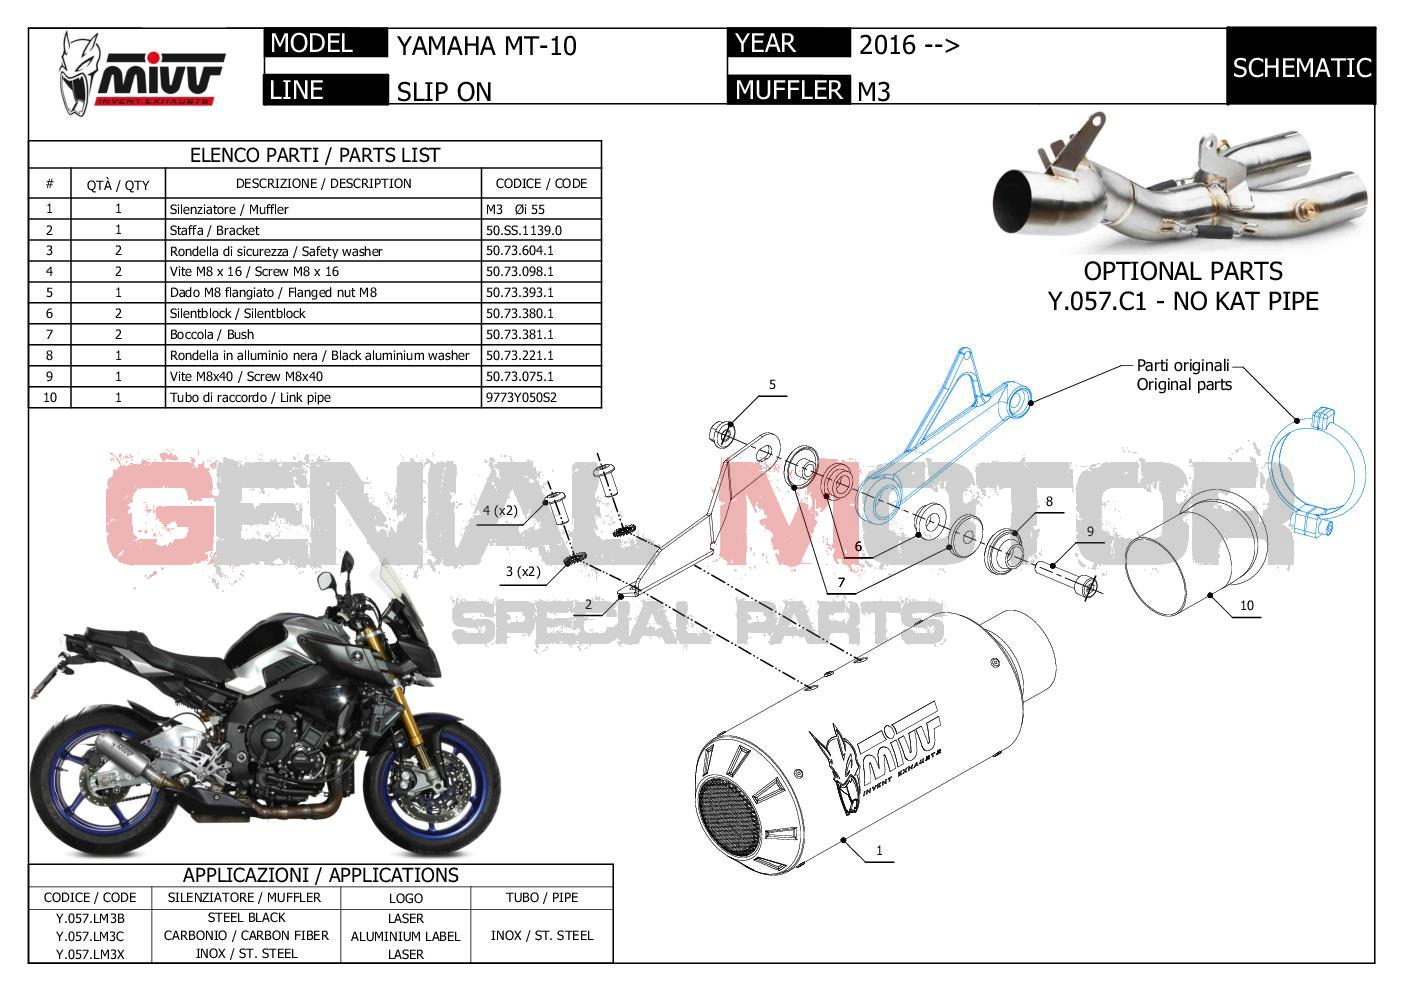 Mivv Approved Exhaust Muffler MK3 Steel for YAMAHA MT-10 2016 > 2018